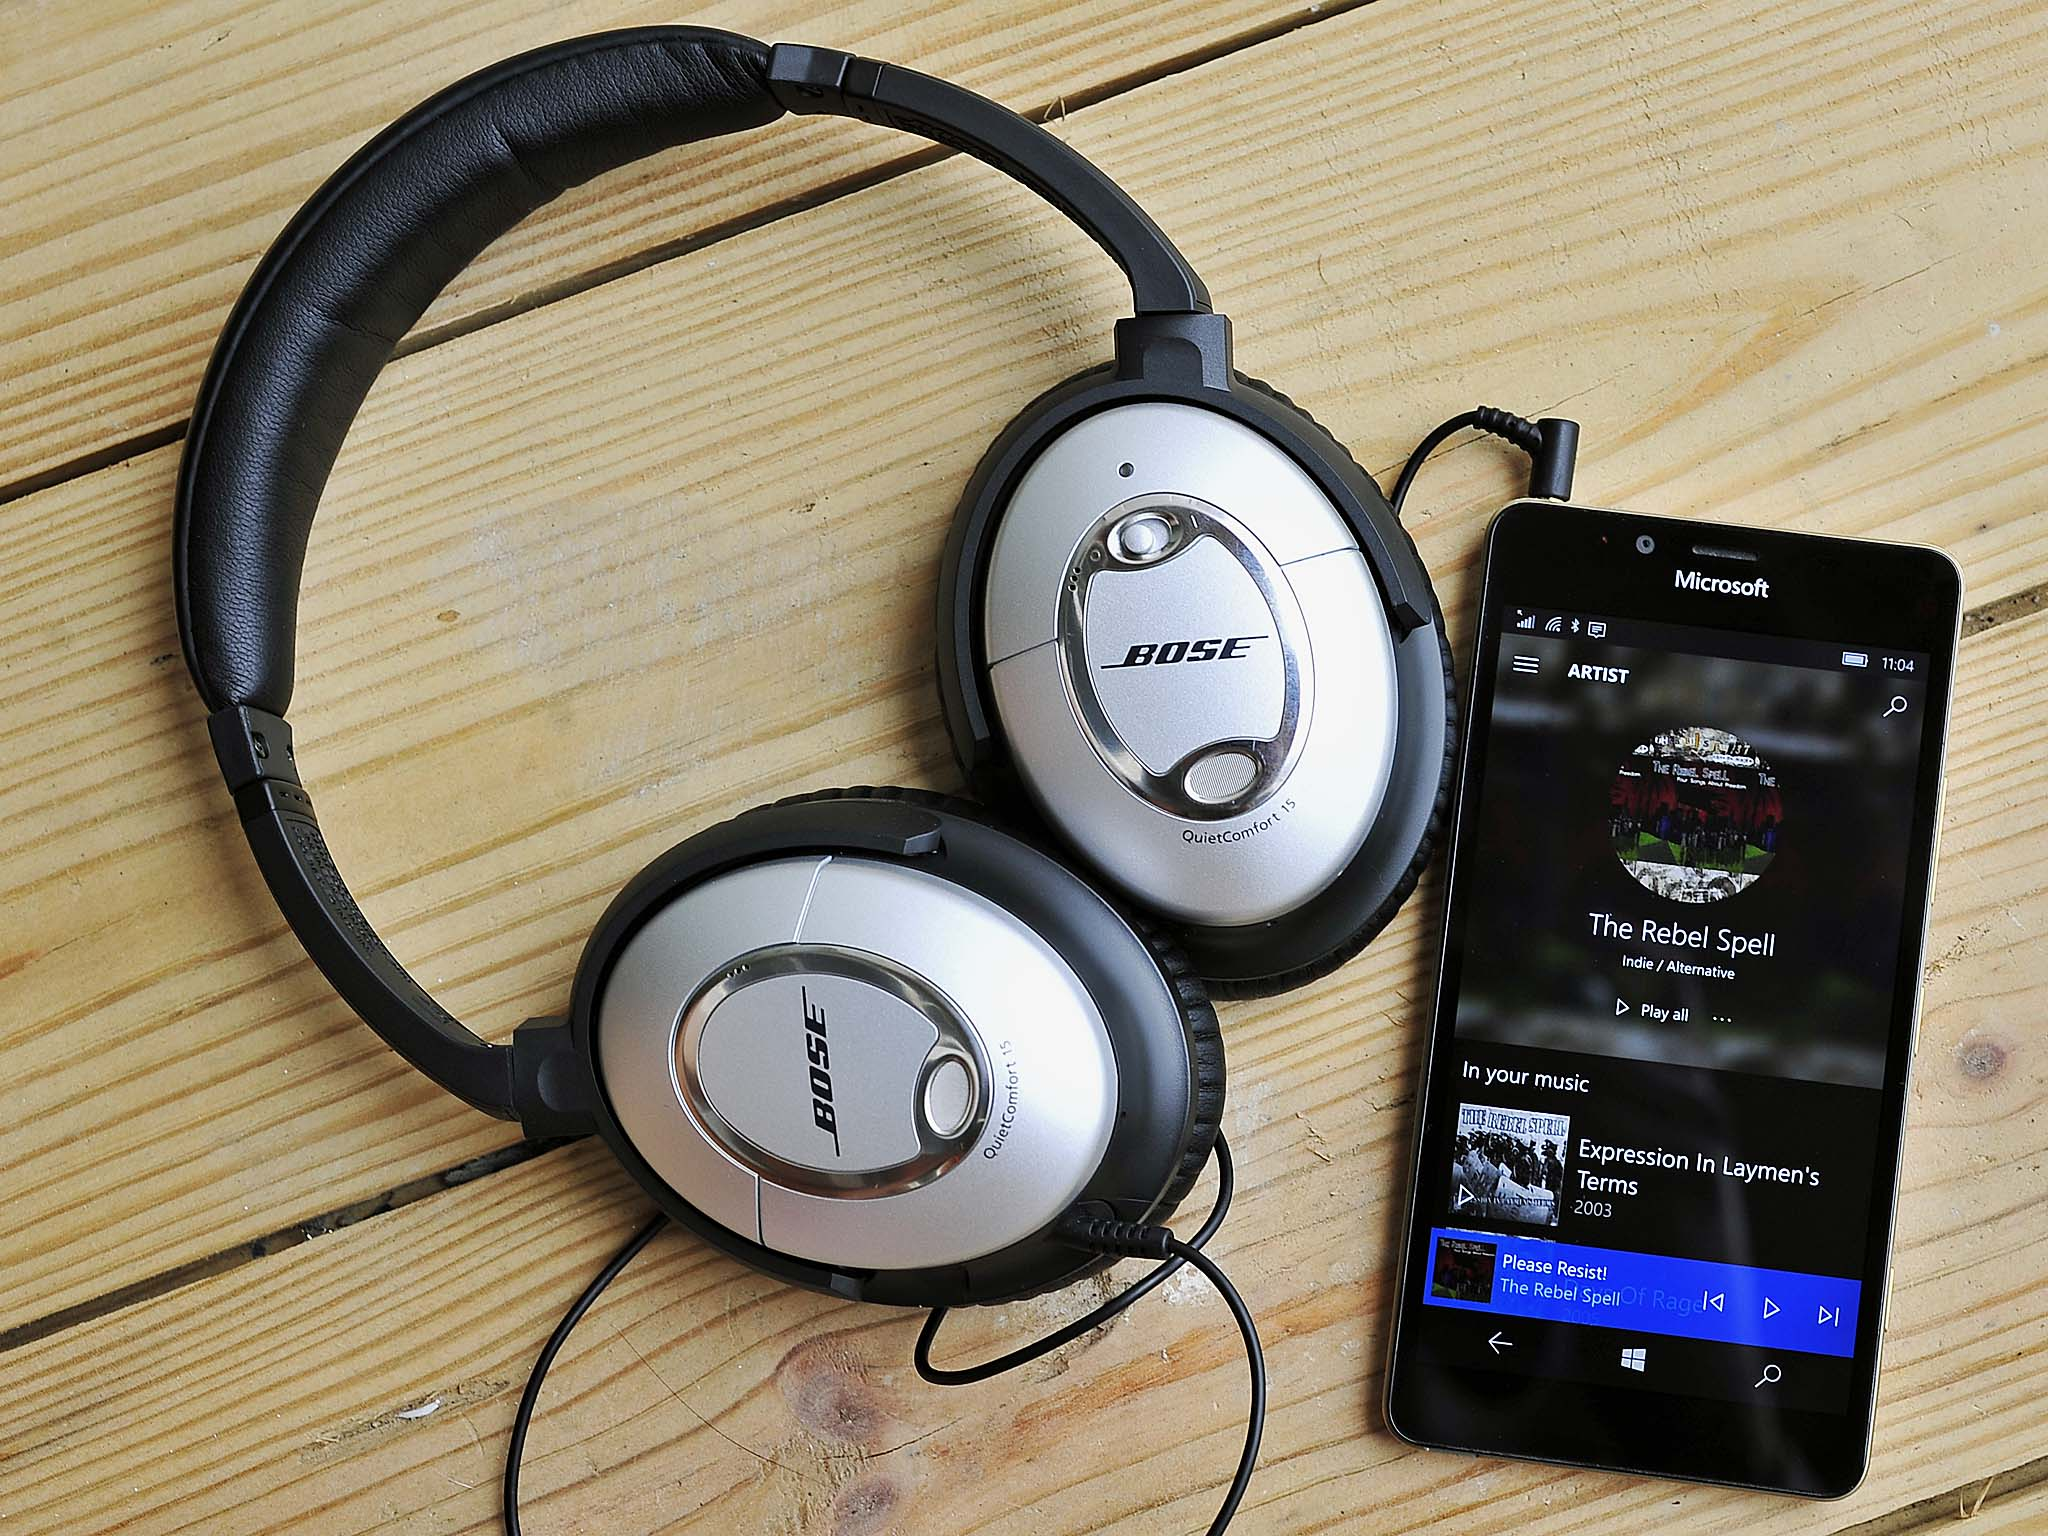 small resolution of the difference in sound quality between bluetooth headphones and wired headphones has lessened over time however some diehard audiophiles still believe a